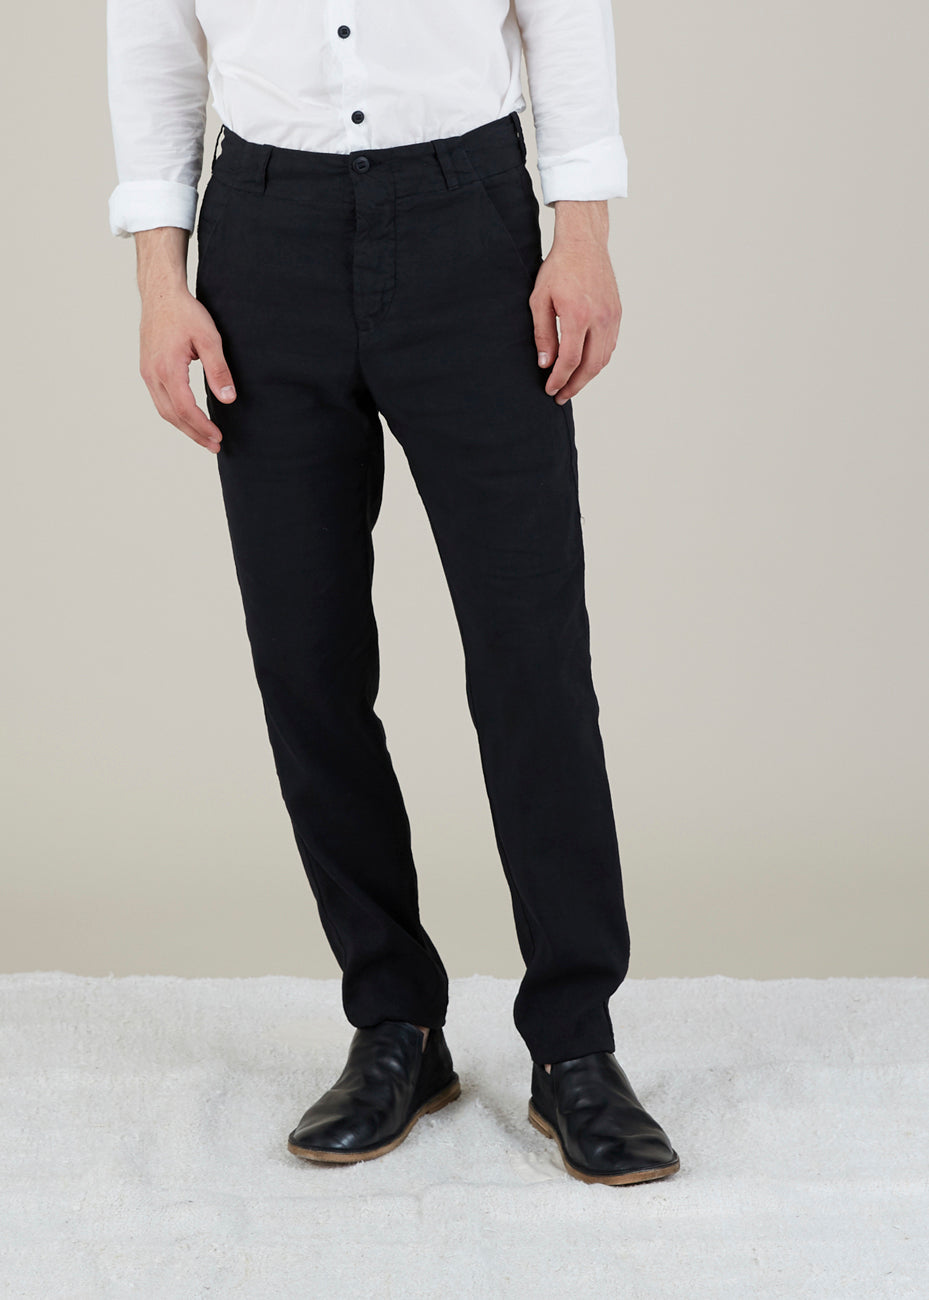 Hannes Roether Men's Linen Blend Track Pant